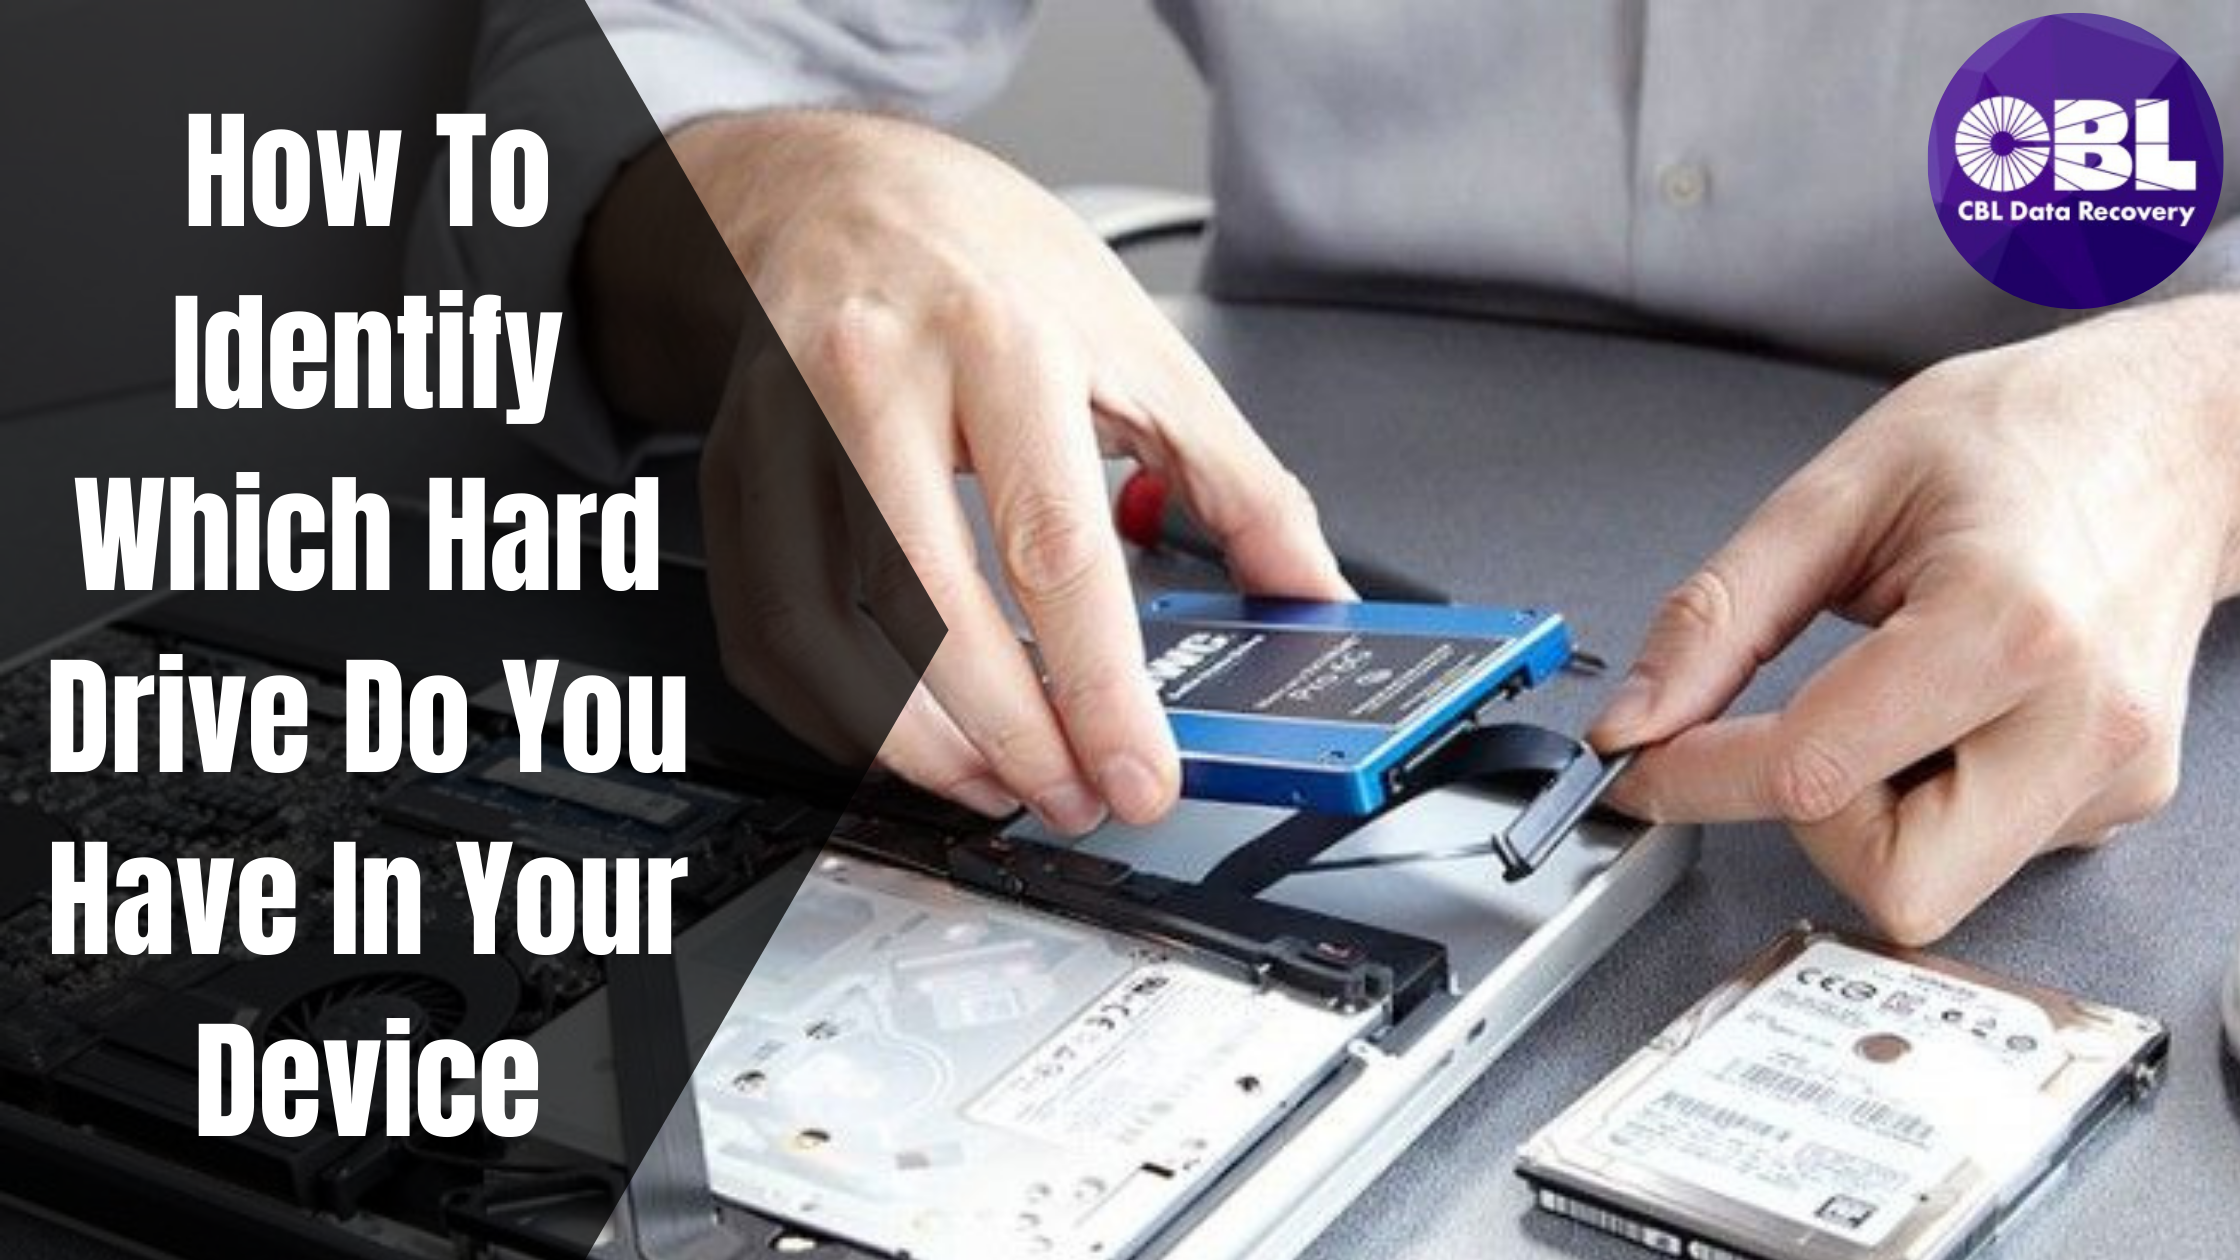 How To Identify Which Hard Drive Do You Have In Your Device?